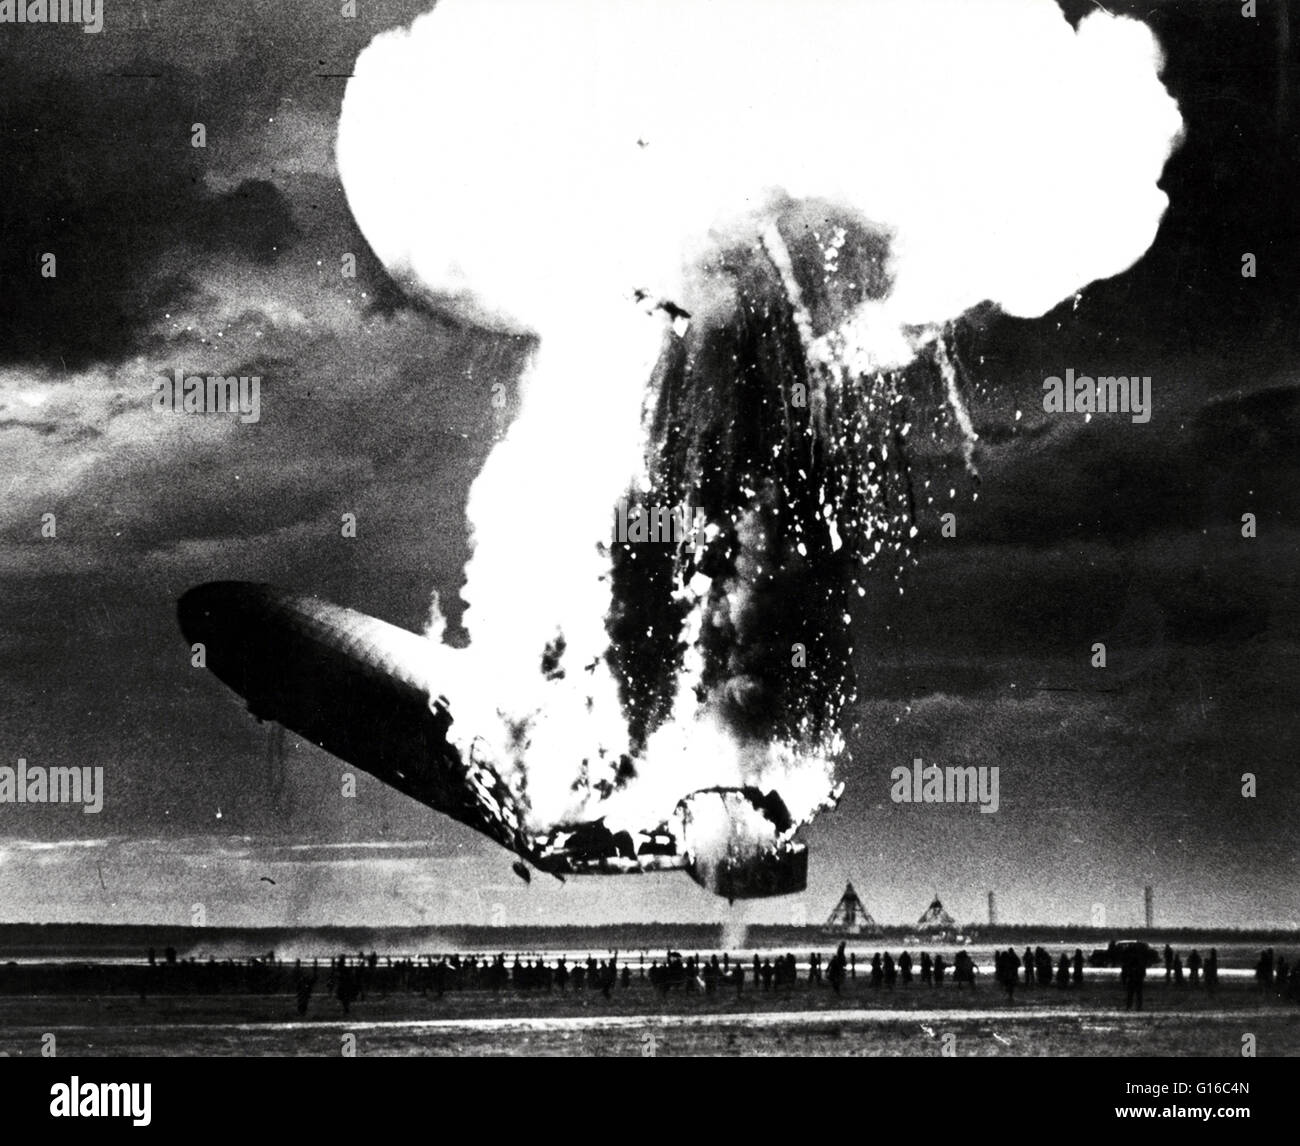 The Hindenburg disaster took place on Thursday, May 6, 1937, as the German passenger airship LZ 129 Hindenburg caught - Stock Image